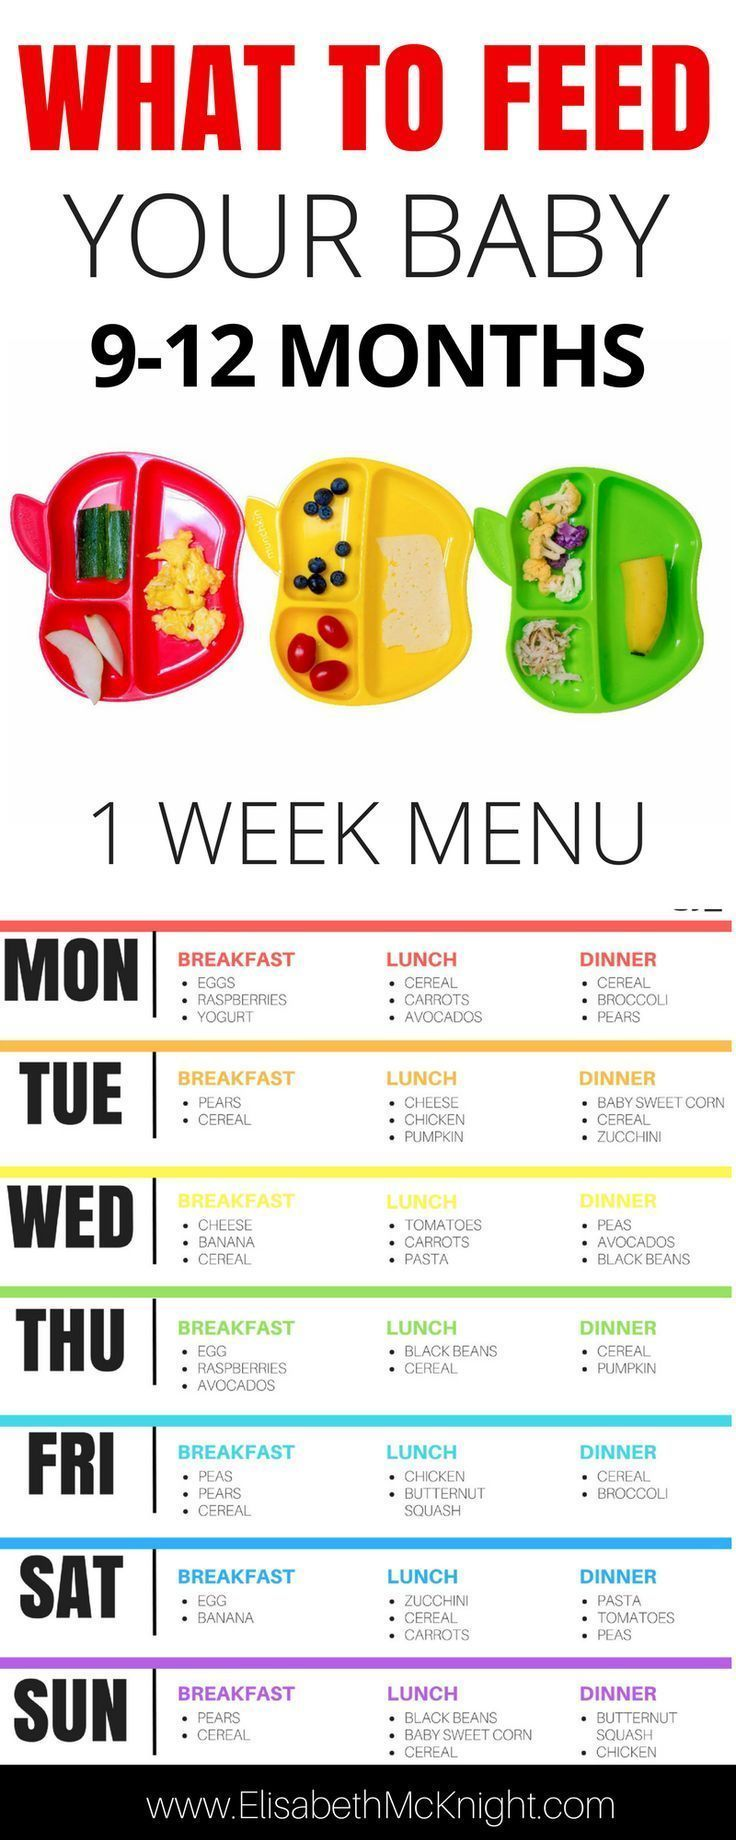 9 12 Month Baby Feeding Schedule With Images Baby Food Recipes